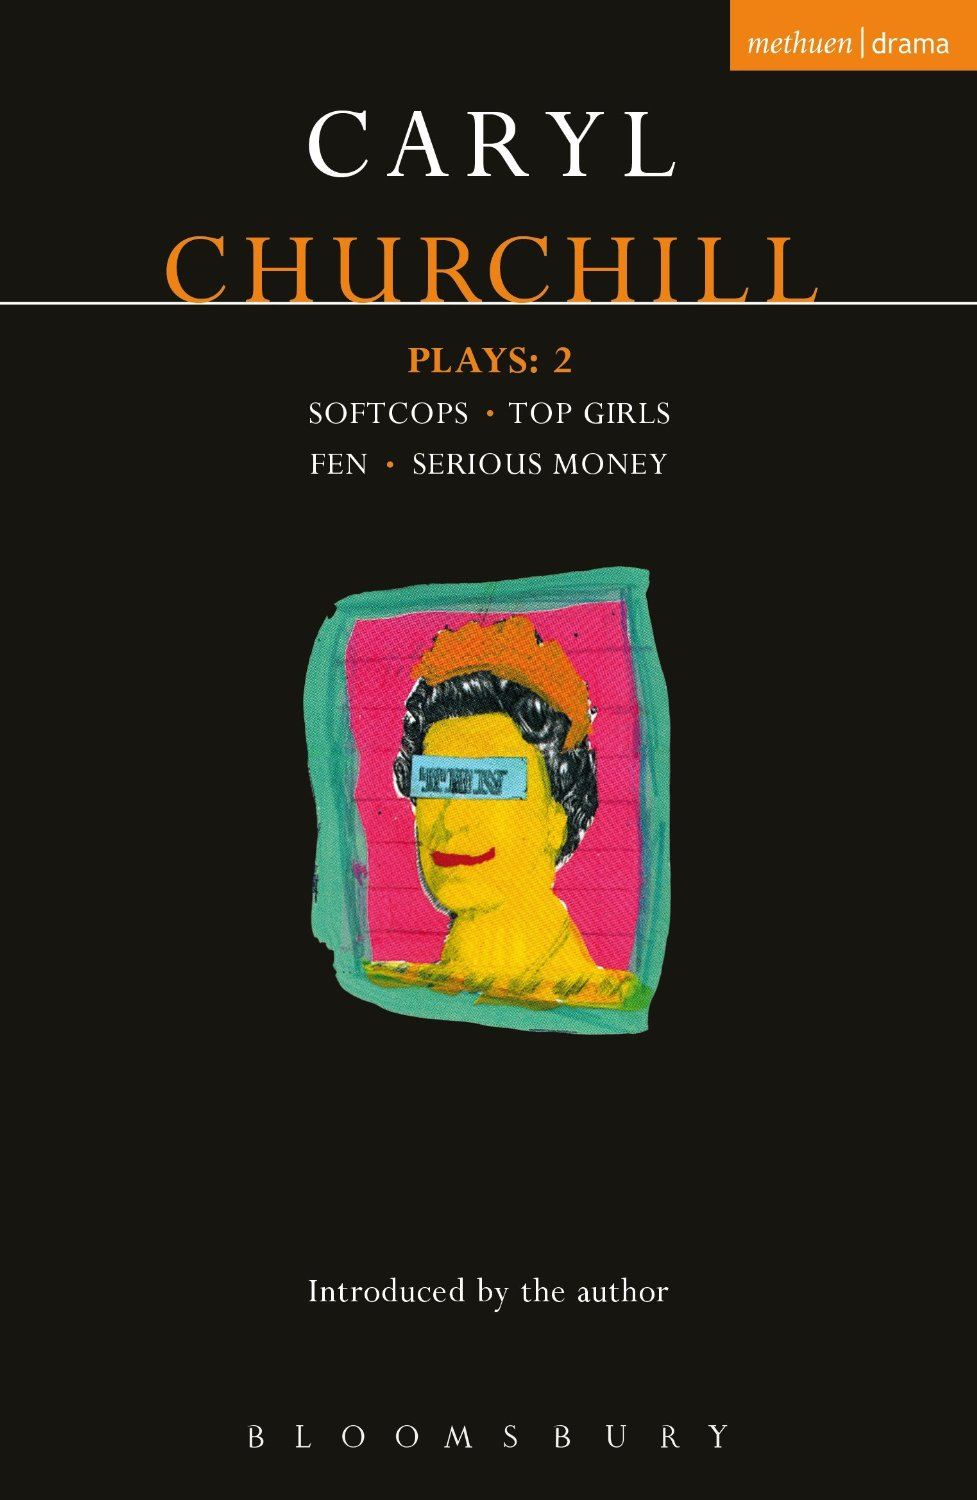 an analysis of the marlene character in top girls a play by caryl churchill Caryl churchill has a caryl churchills top girls english at the beginning of the play you are introduced to the main character, marlene, who is a top girl.